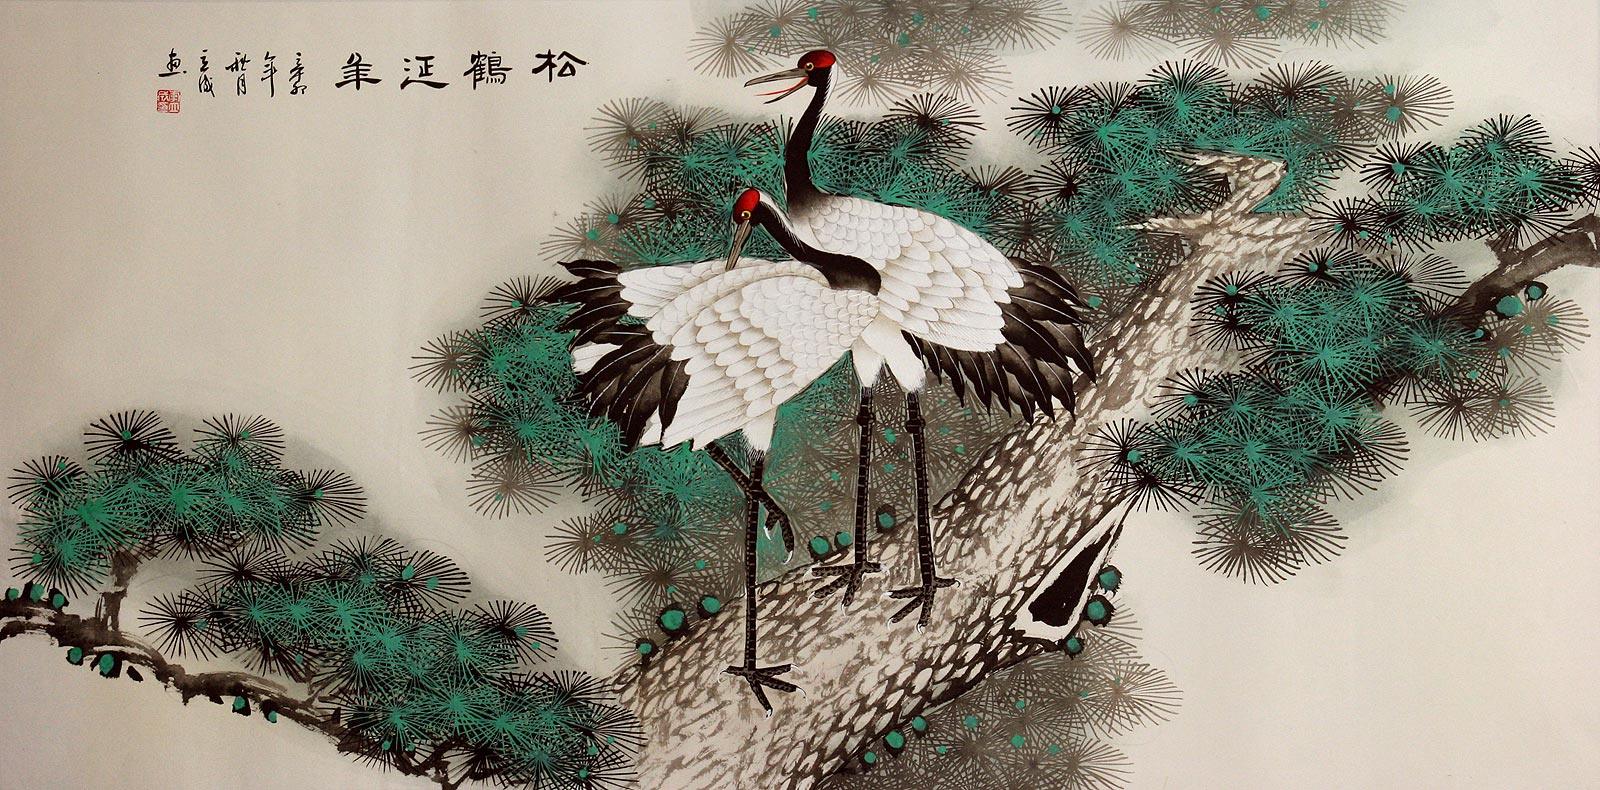 Pine Tree and Cranes Longevity - Large Painting